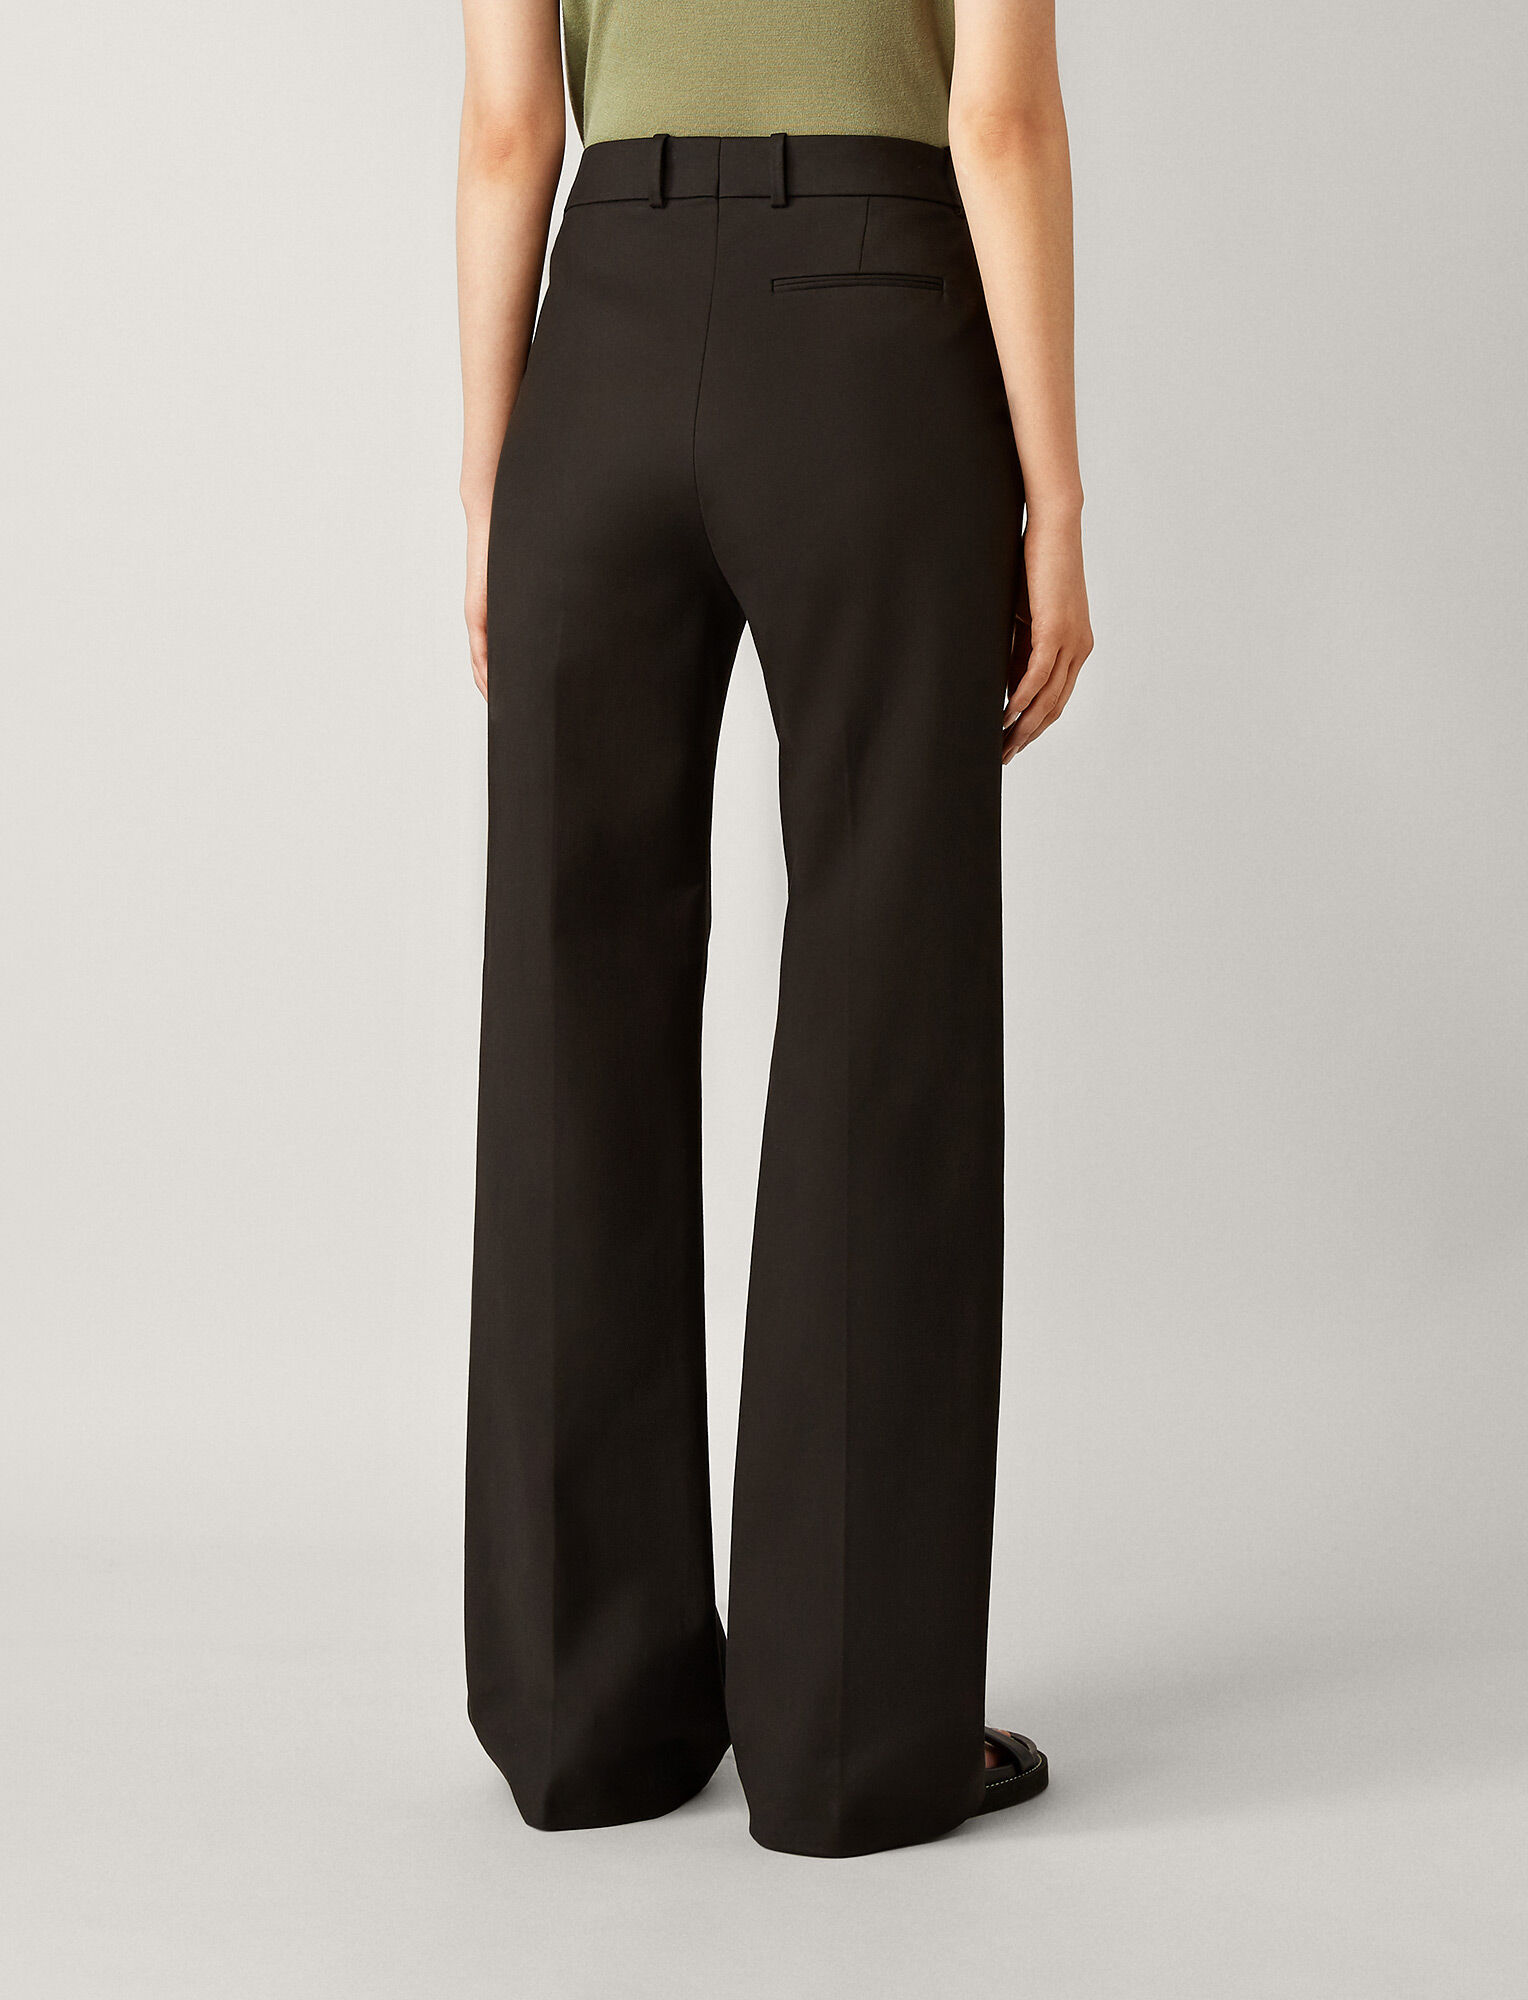 Joseph, Richard Double Cotton Stretch Trousers, in BLACK